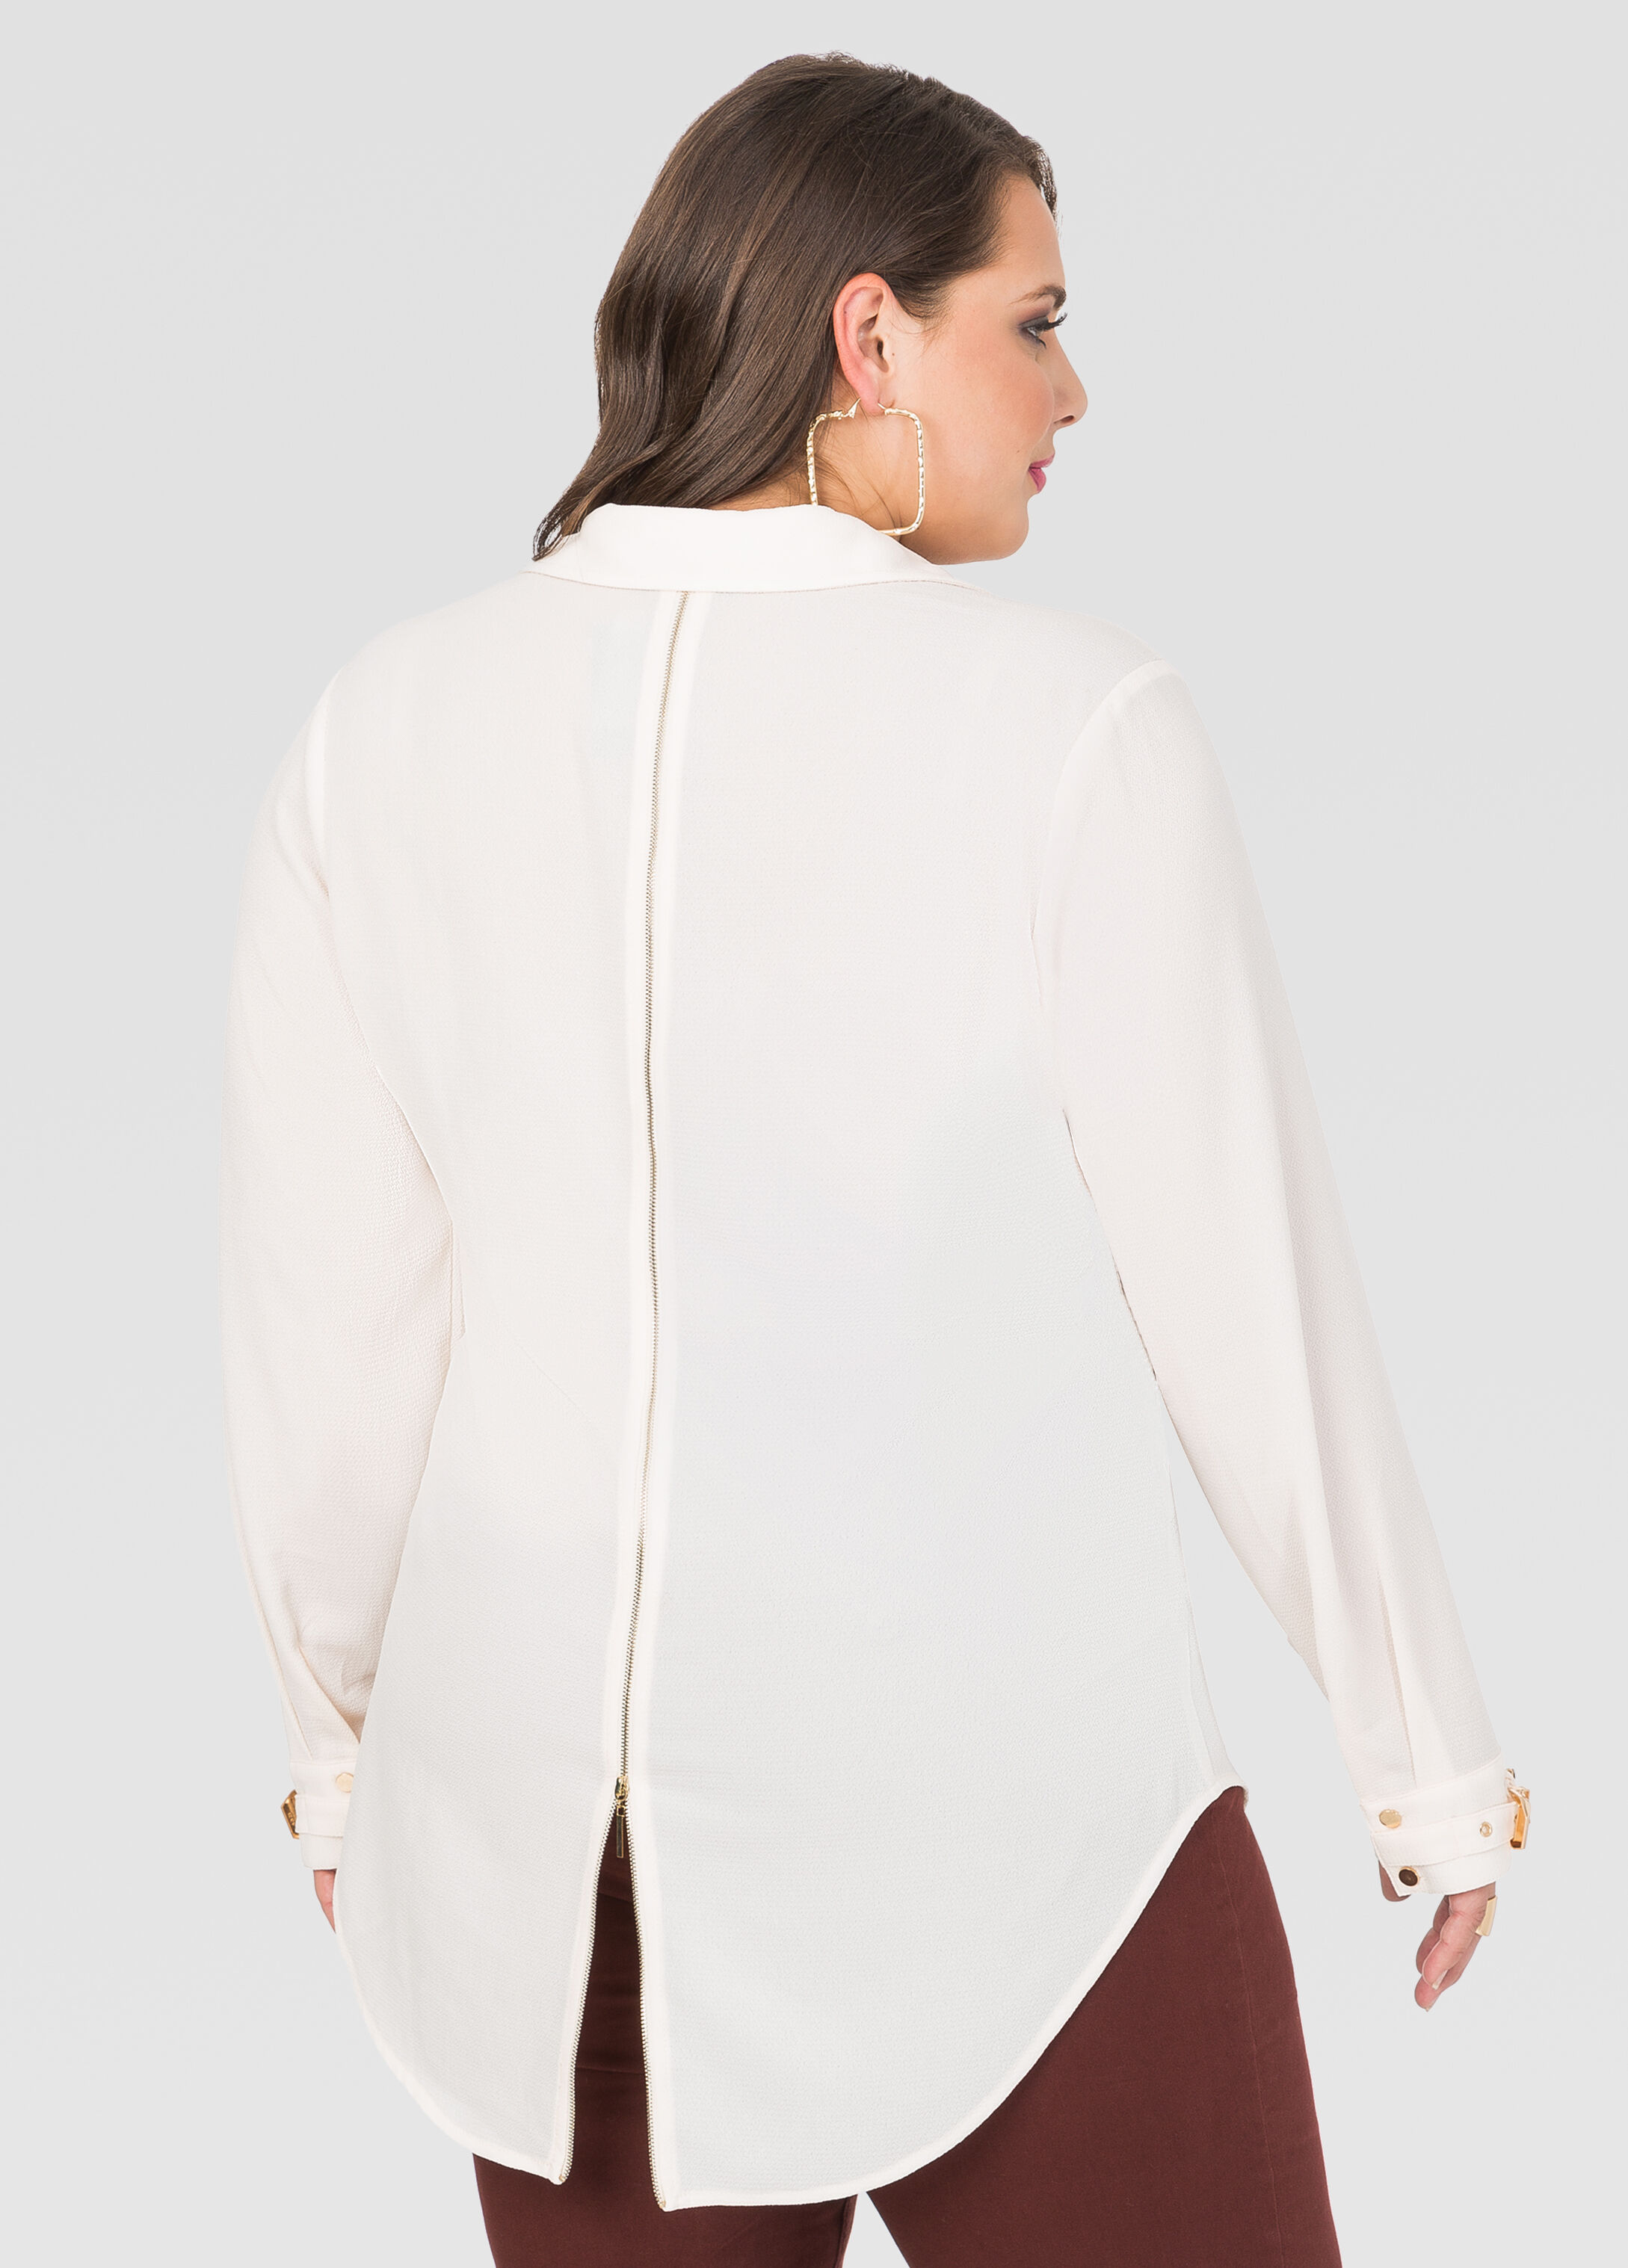 Metal Hardware Zip Back Blouse